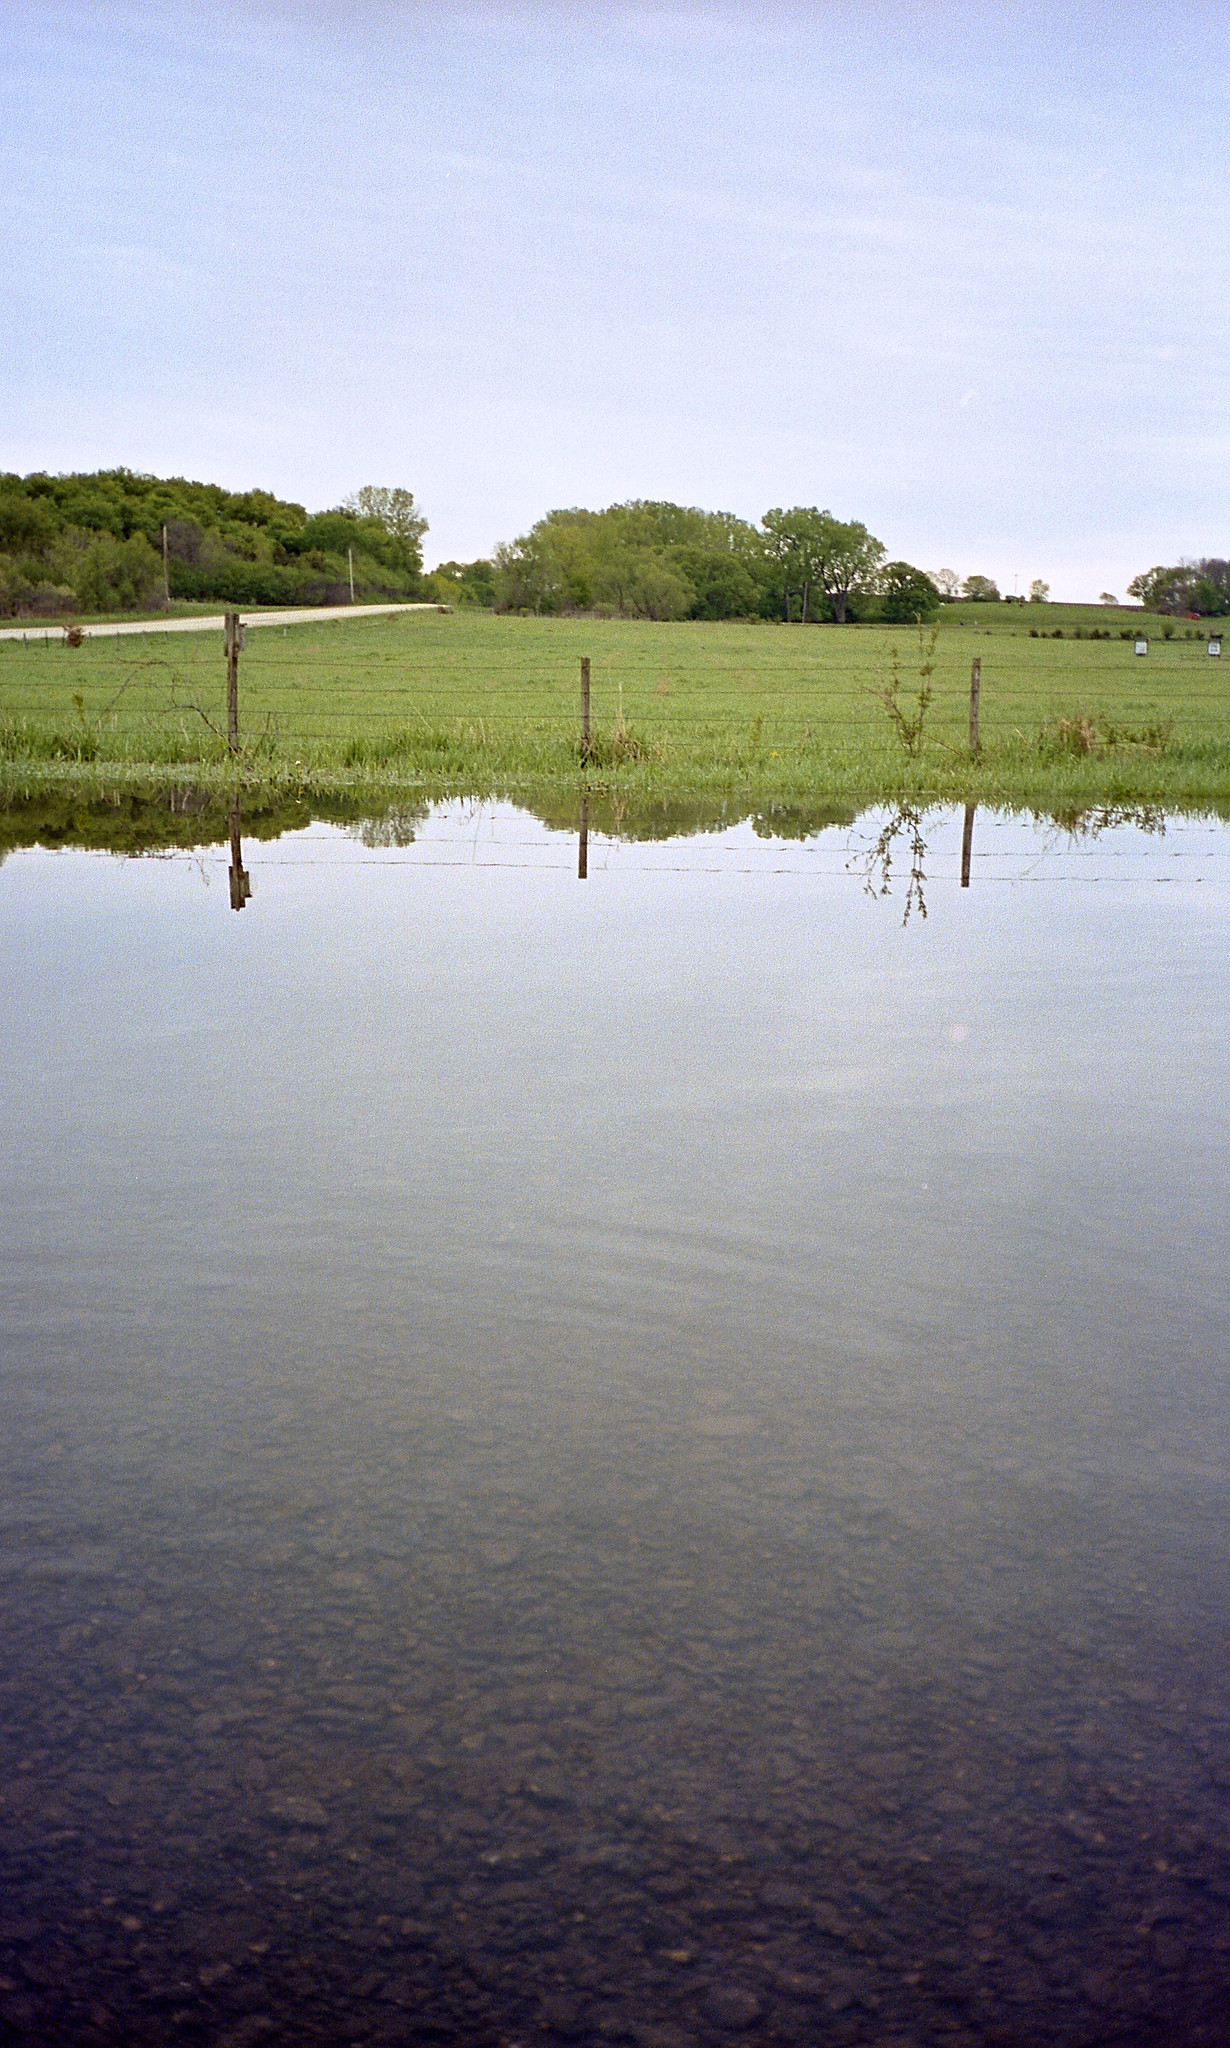 Kodak Portra 400, parking lot of the place above after a lot of rain.